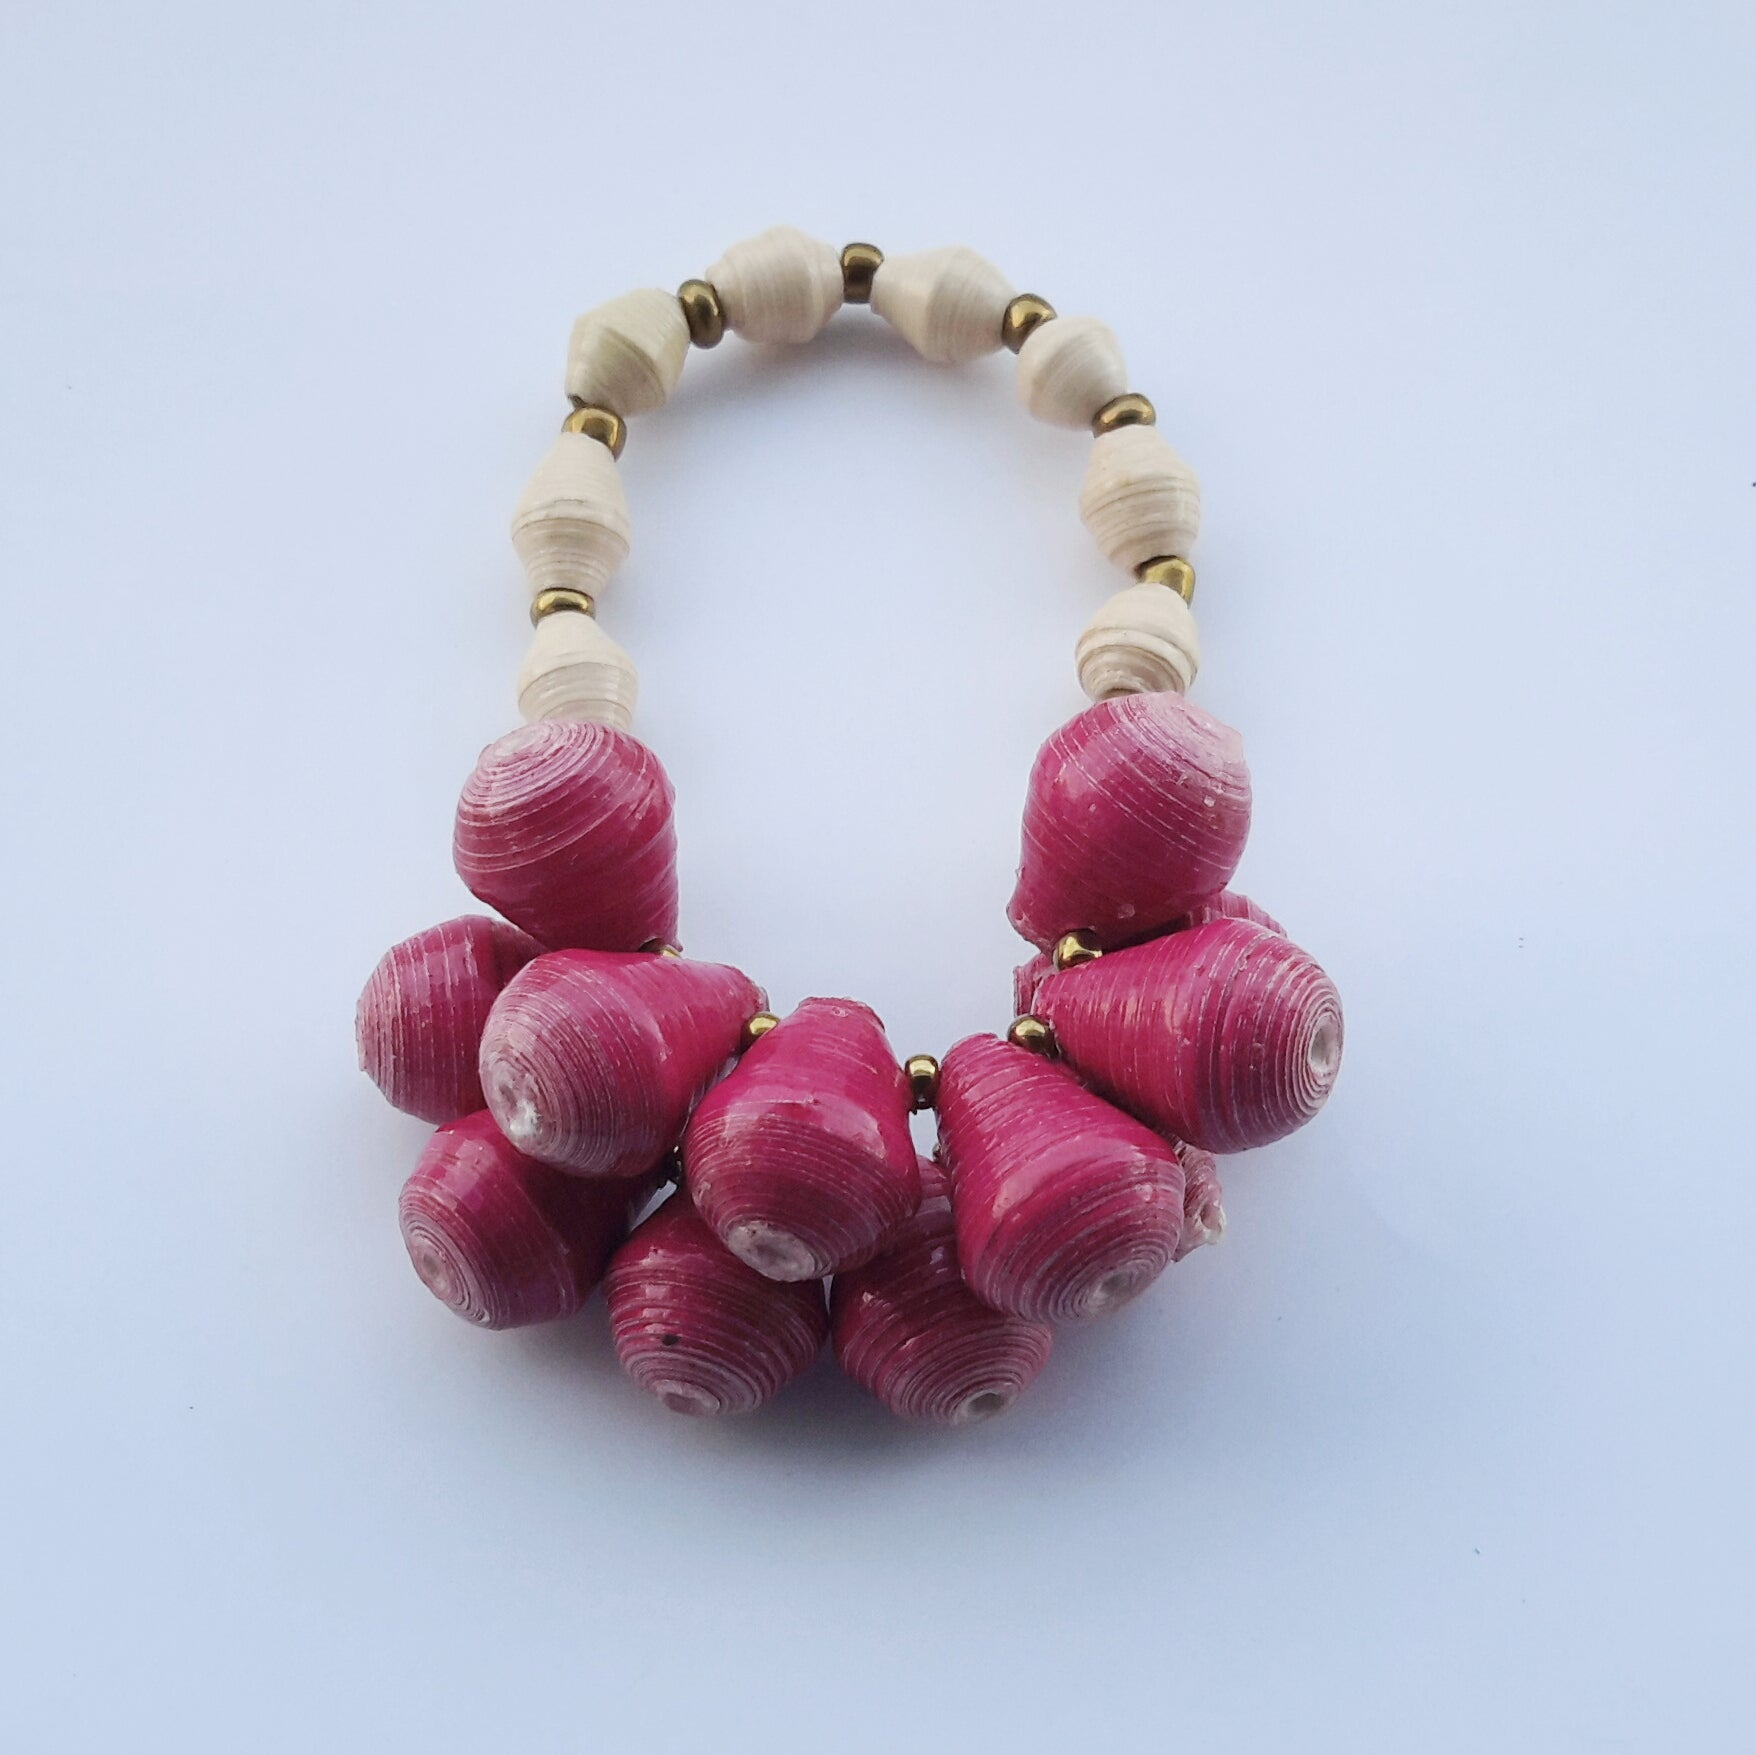 Rasberry pink hand made design paper bead bracelet made out of recycled paper in Uganda by principles of fair trade, ethical and sustainable fashion, empowering women of post war area, by Finnish / Scandinavian brand, Agulu Paper Beads. Eettinen vadelmanpunainen käsintehty design rannekoru, jota on tehty kierrätyspaperista reilun kaupan periaattein työllistämällä Ugandalaisia nasia.